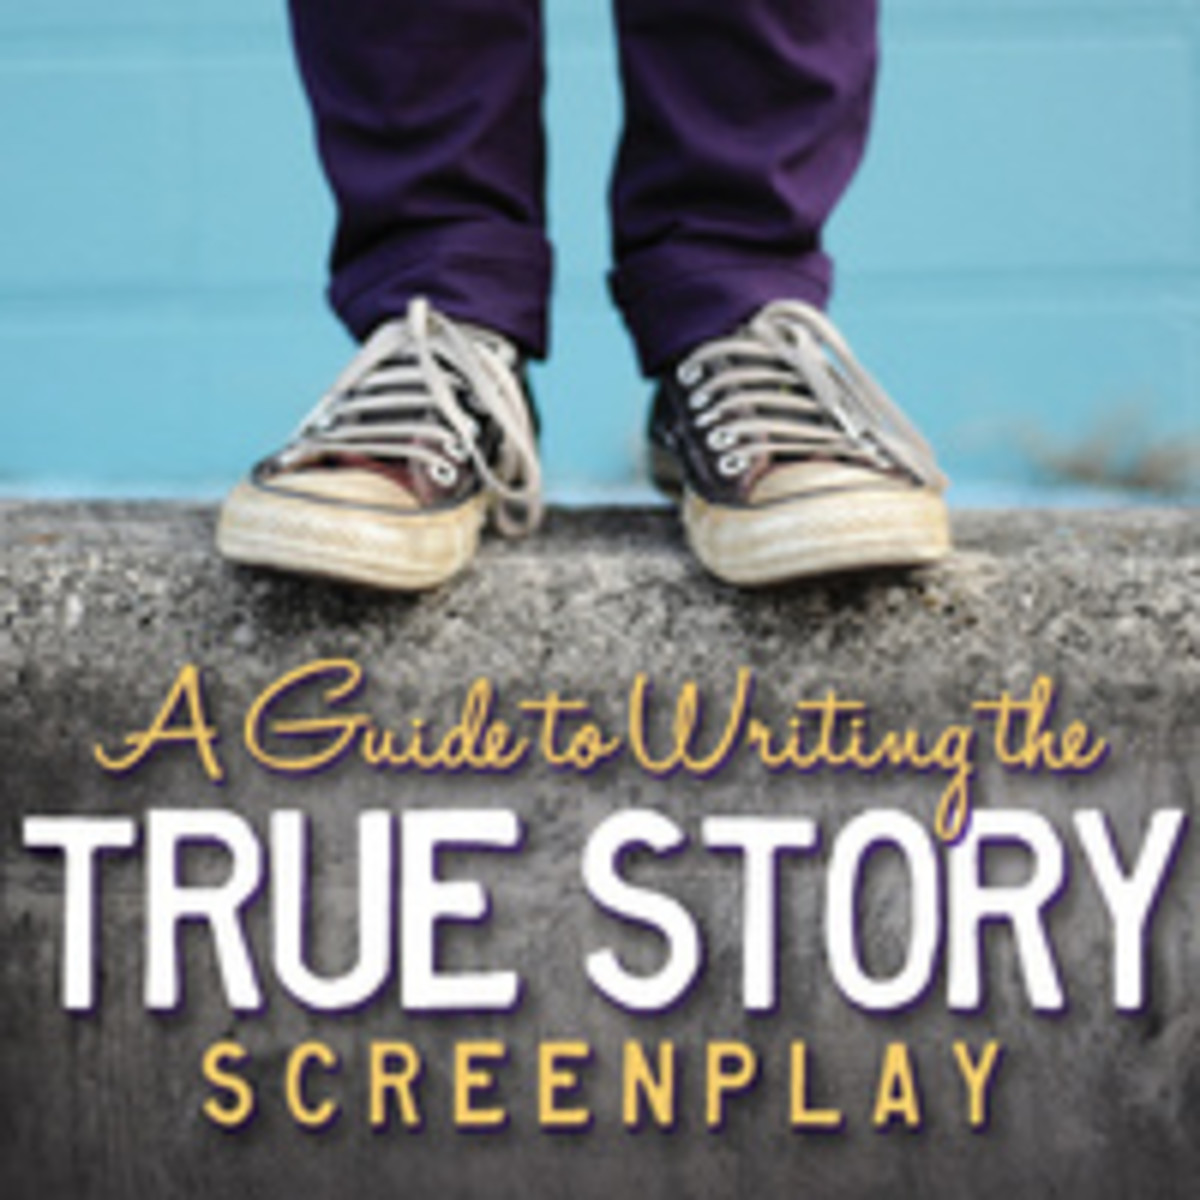 A Guide to Writing the True Story Screenplay